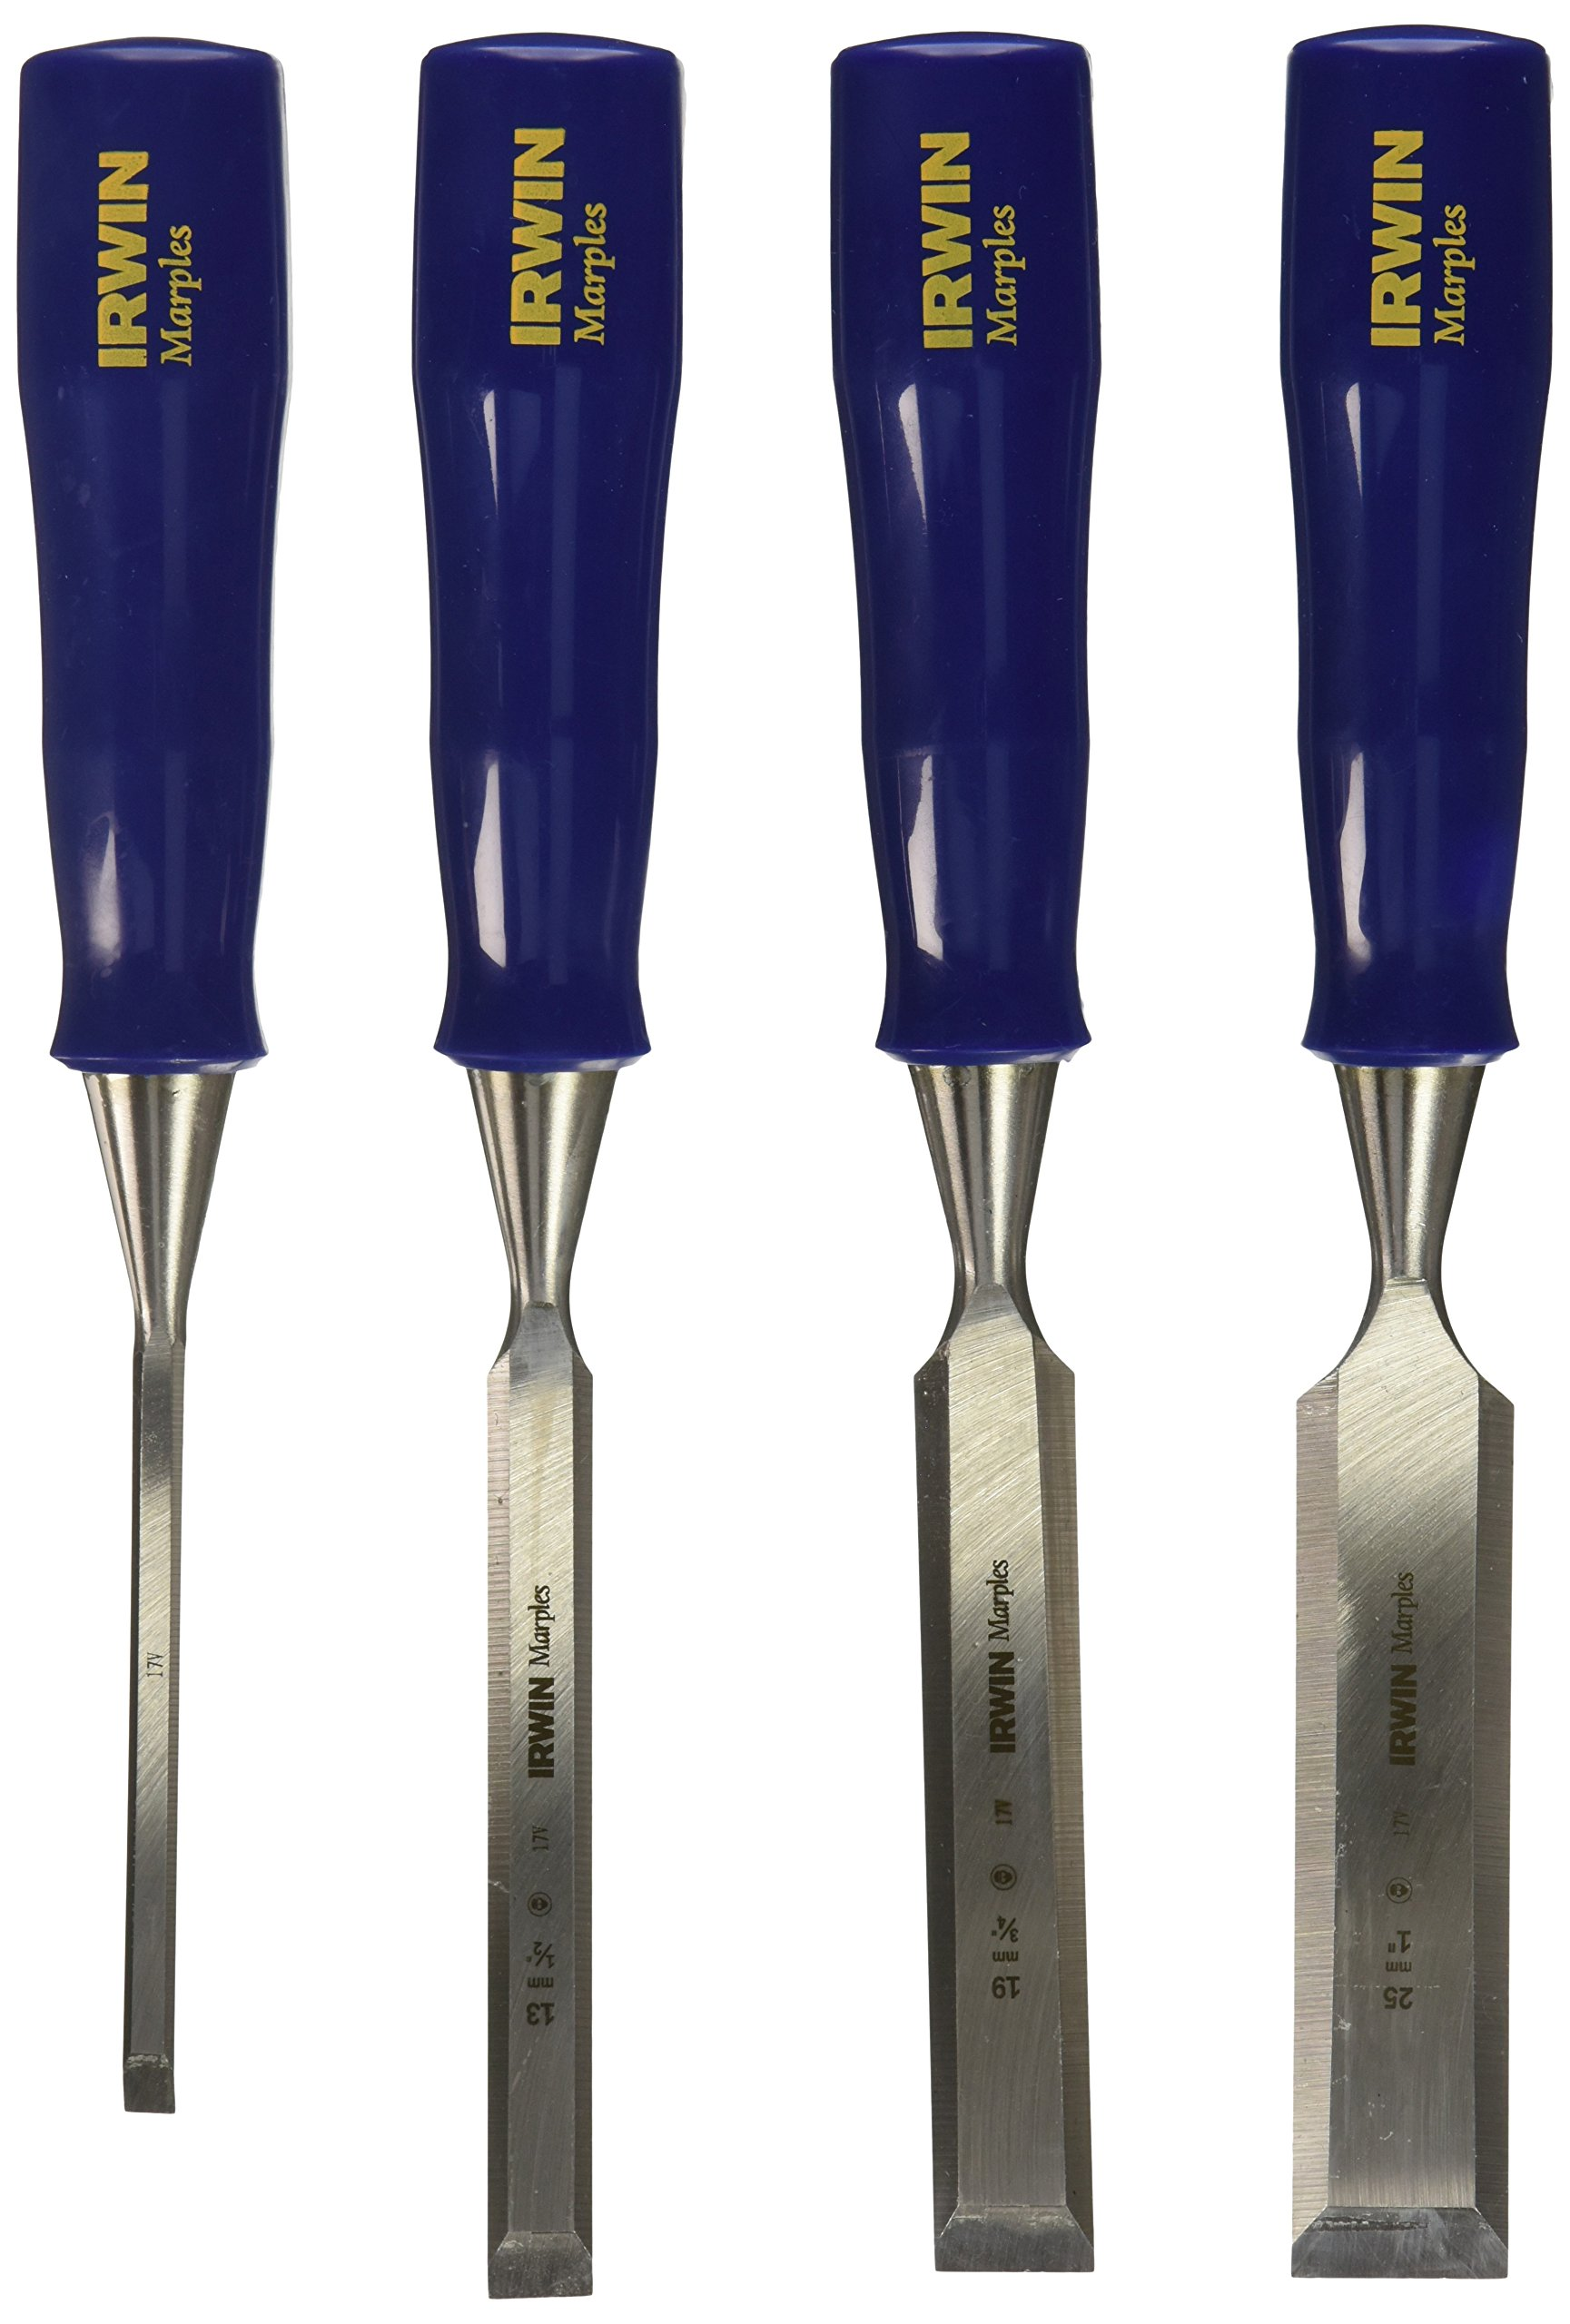 IRWIN Tools Marples Woodworking Chisel Set, 4-Piece (1885164)